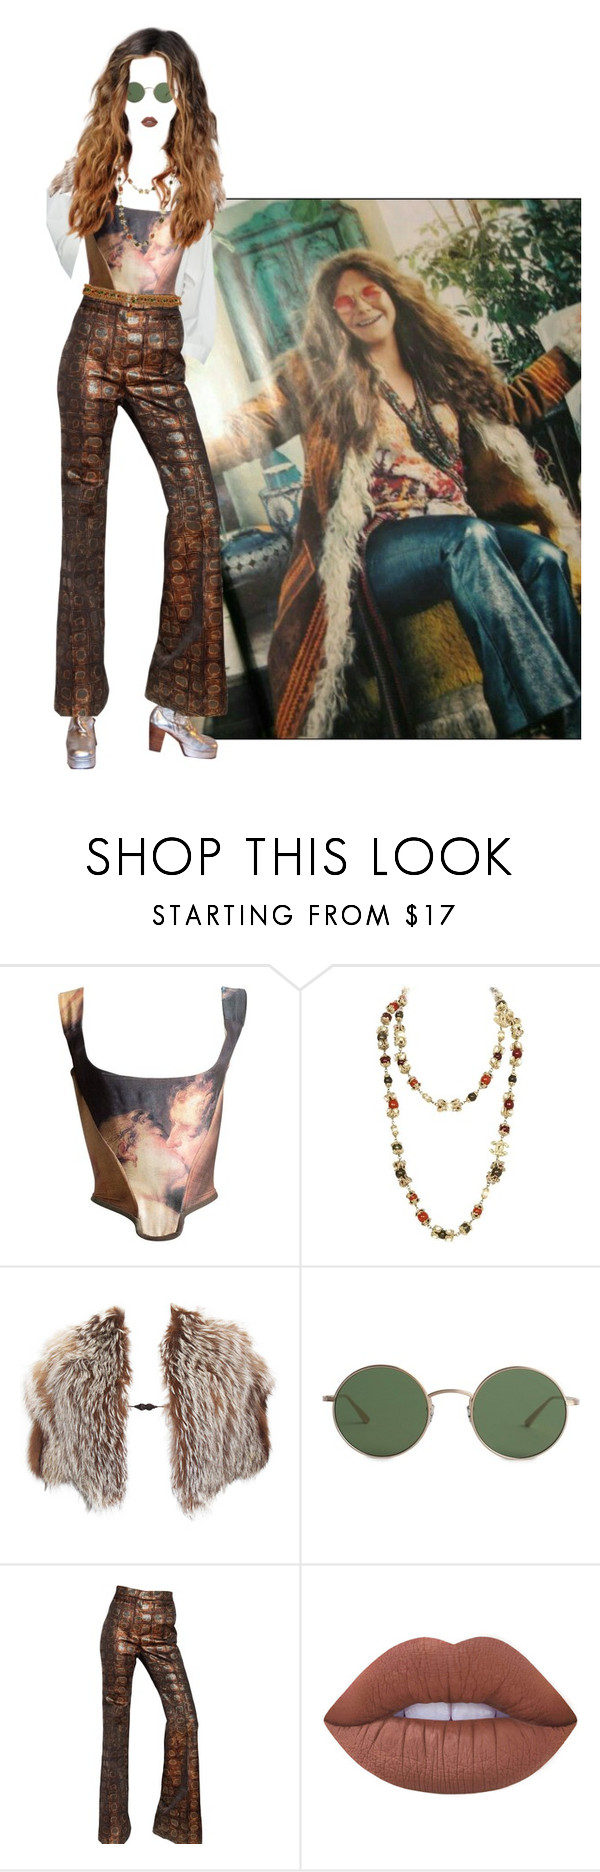 """""""PIECE OF MY RABBIT HEART"""" by treasureforever ❤ liked on Polyvore featuring Vivienne Westwood, Chanel, Tom Ford, The Row, Rochas and Lime Crime"""